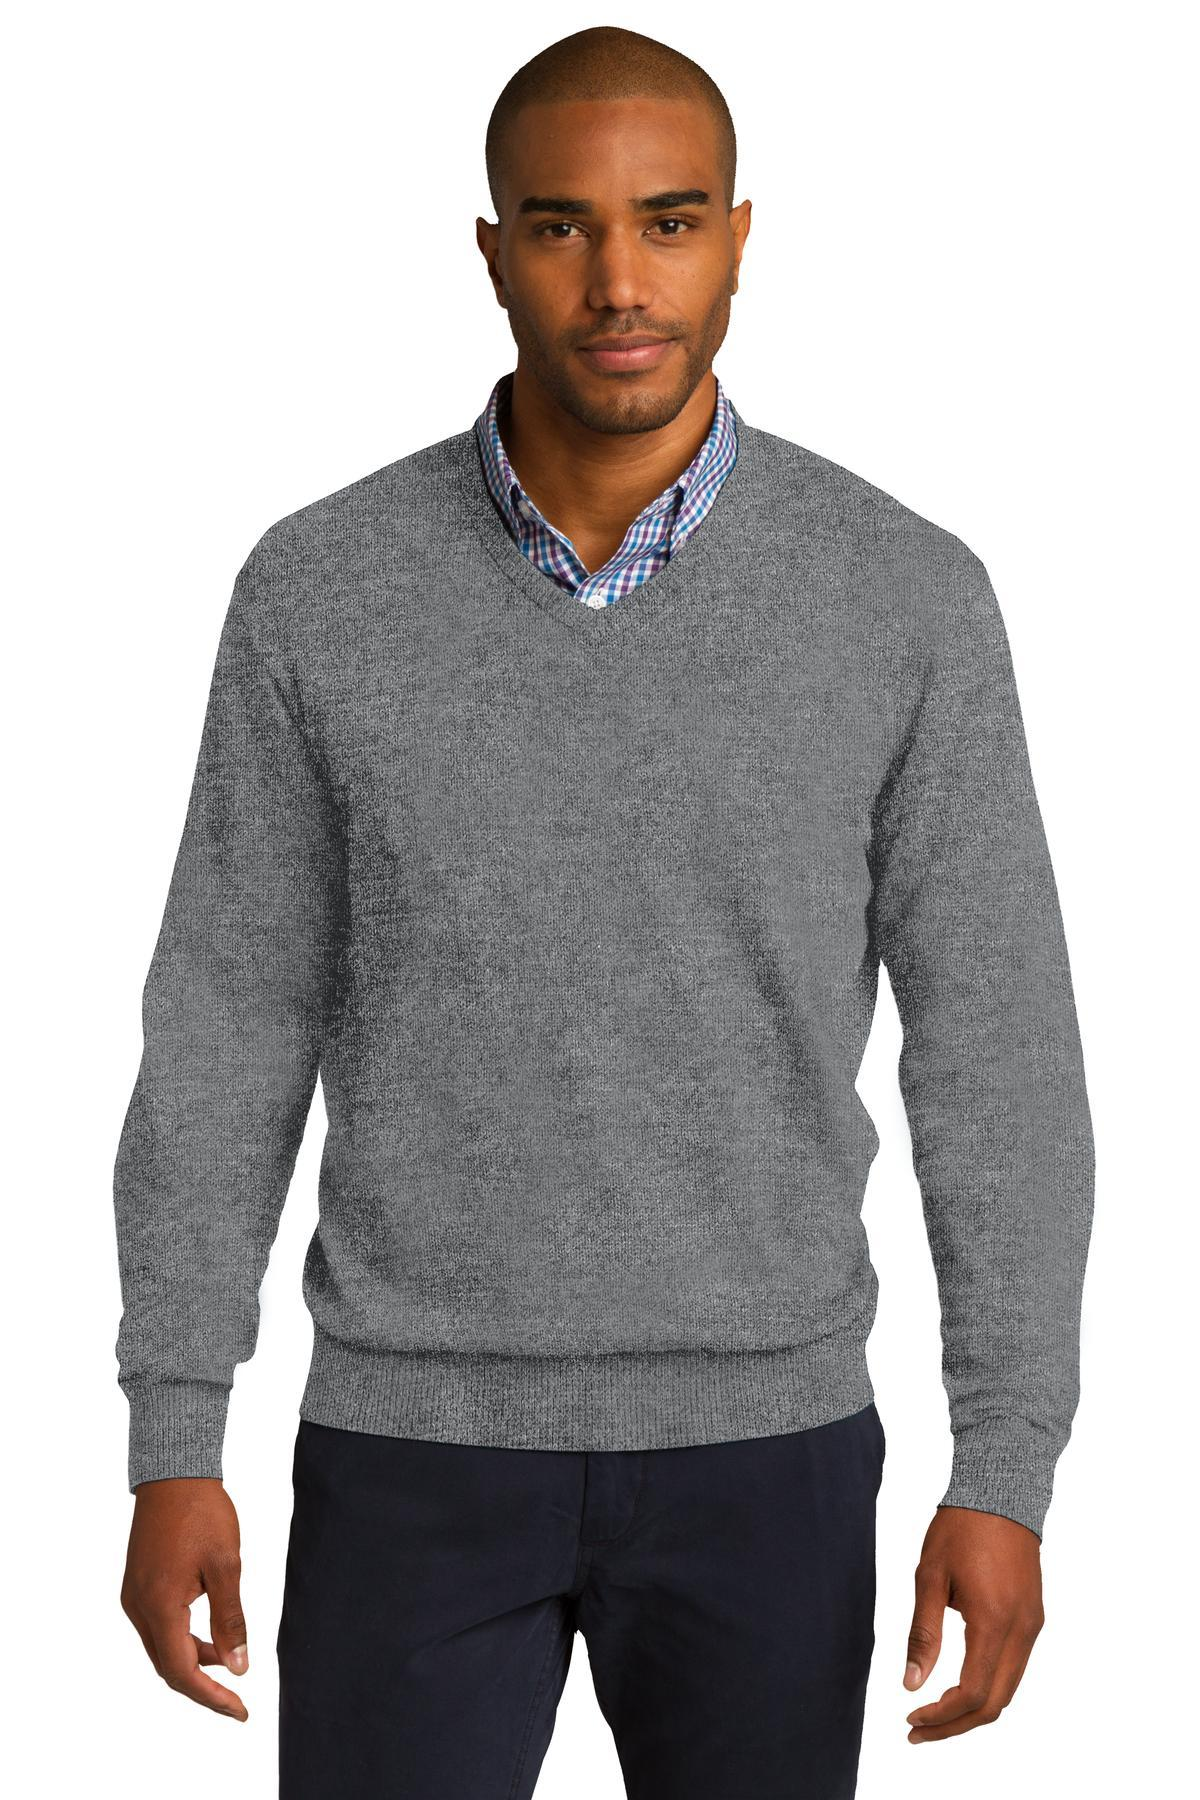 Medium Heather Grey - Port Authority SW285